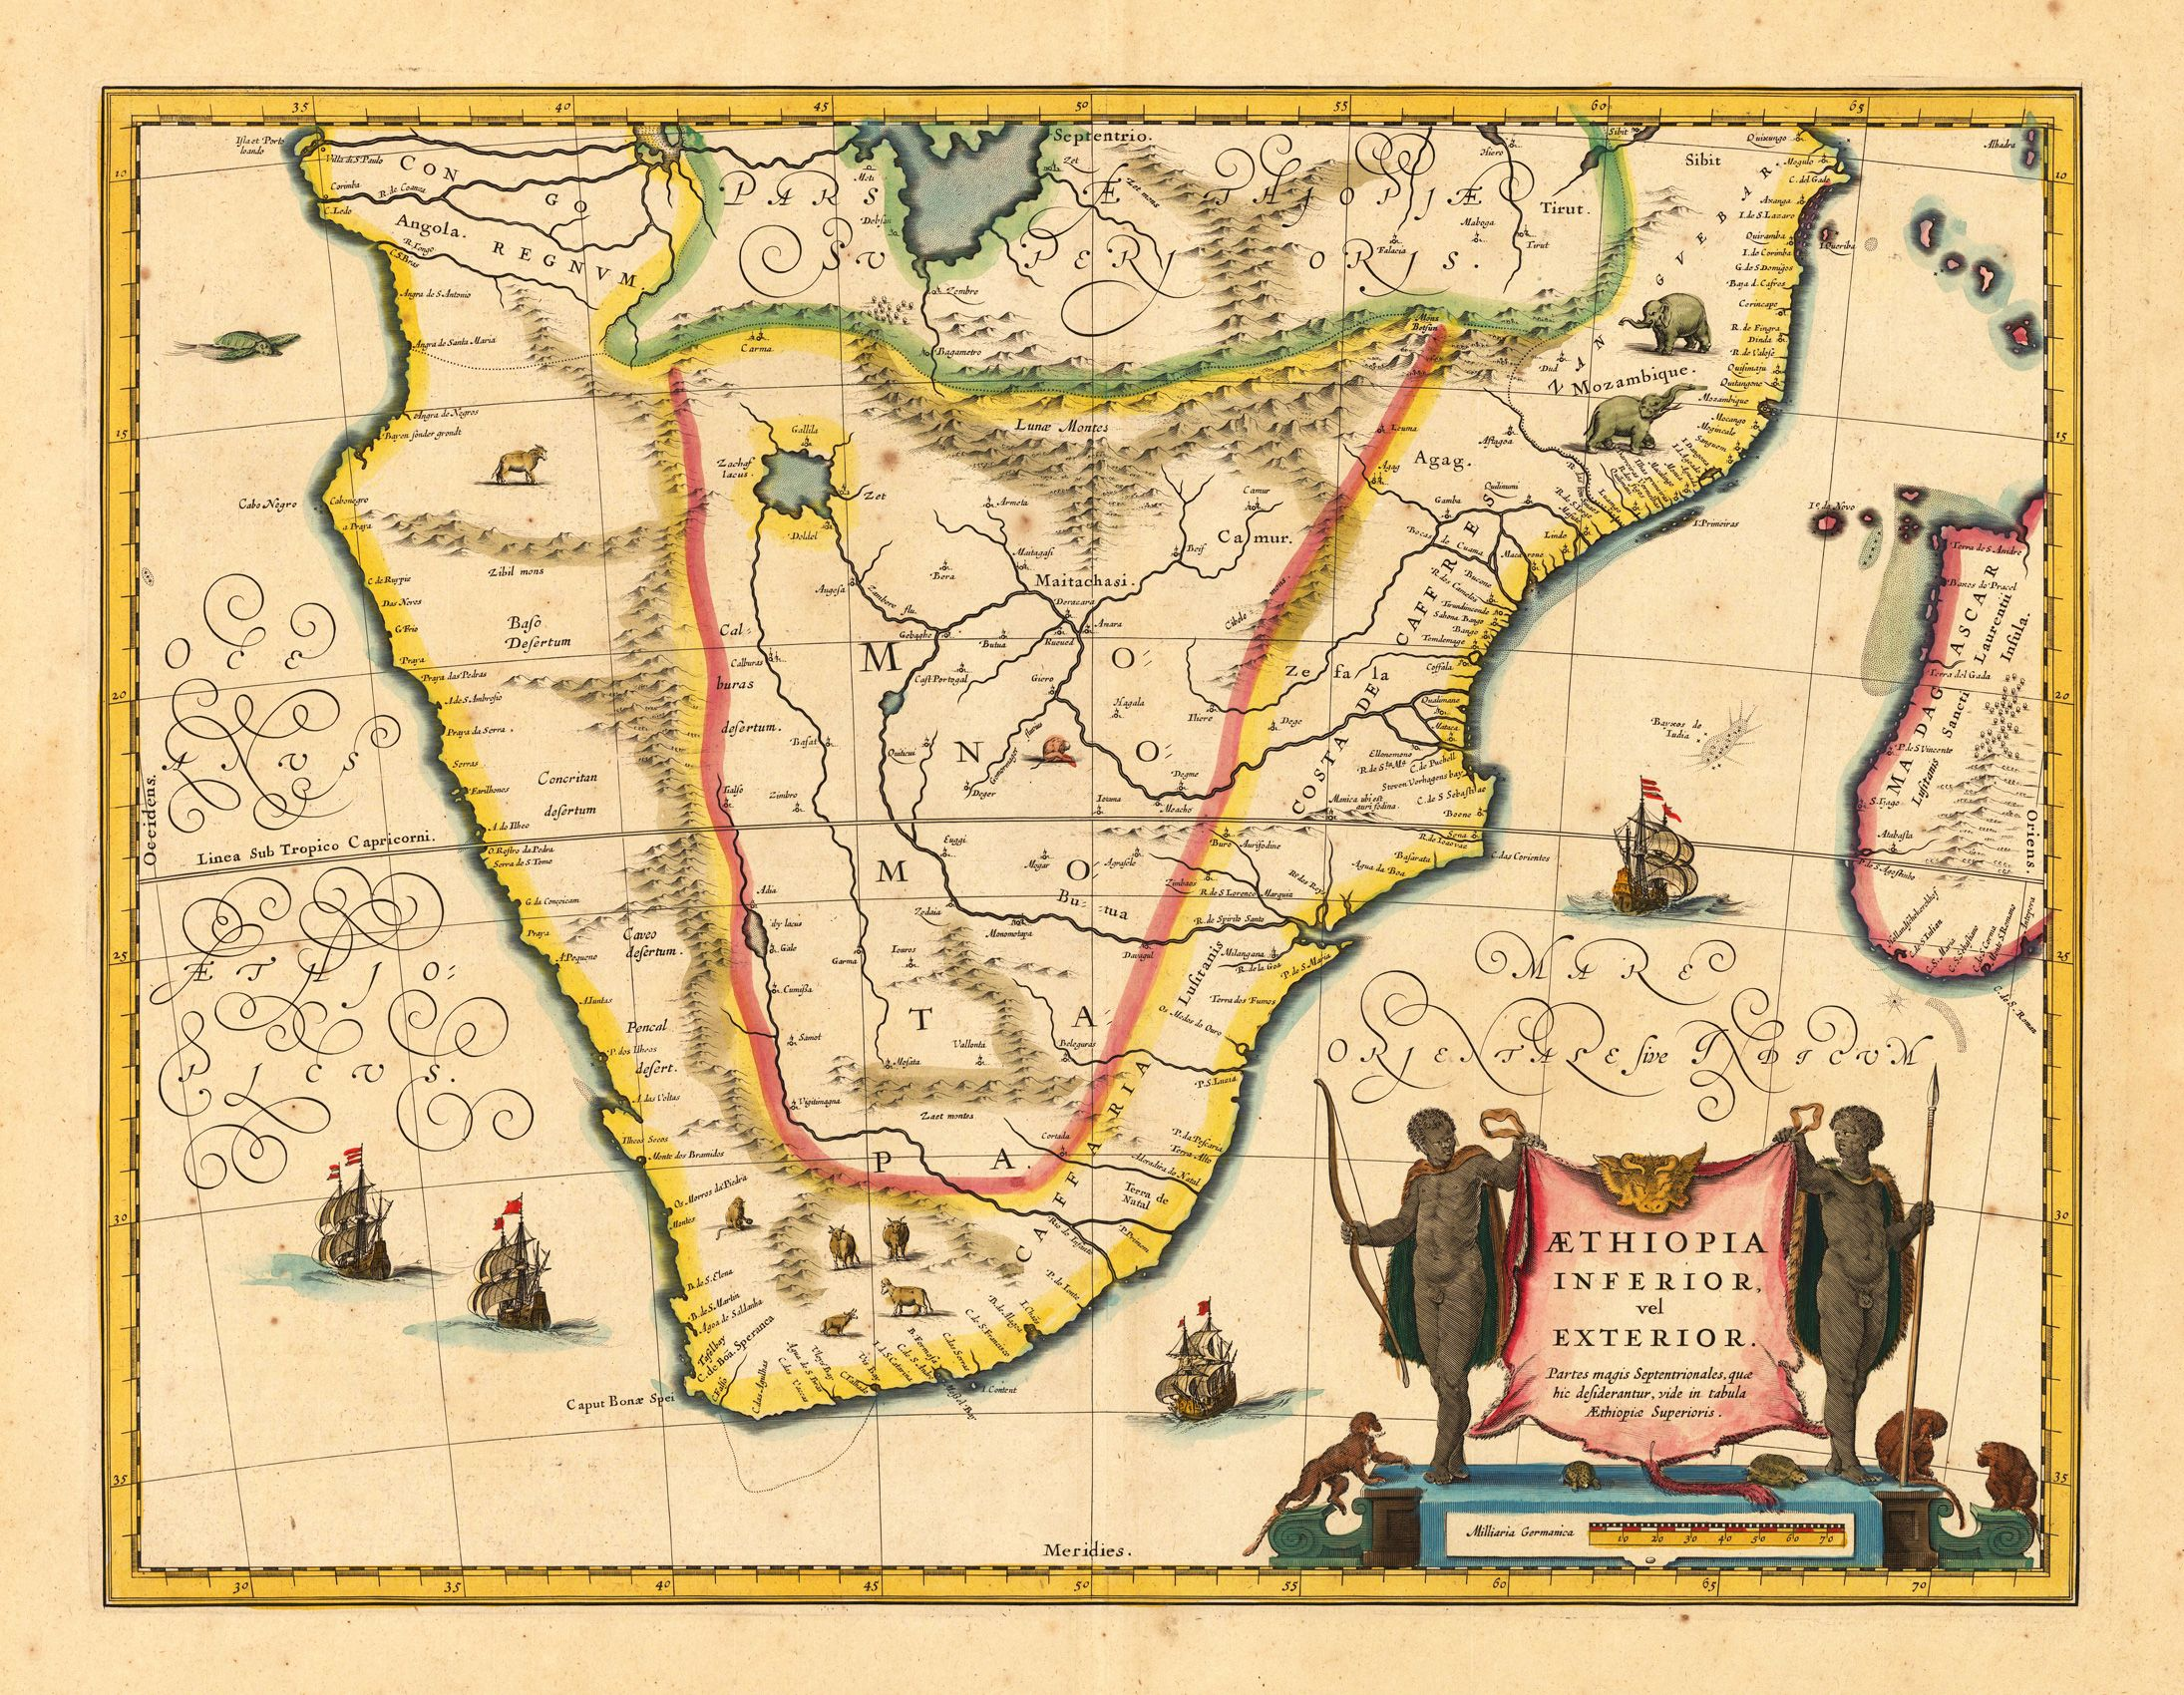 Old map of the southern tip of Africa. Looks like modern day South